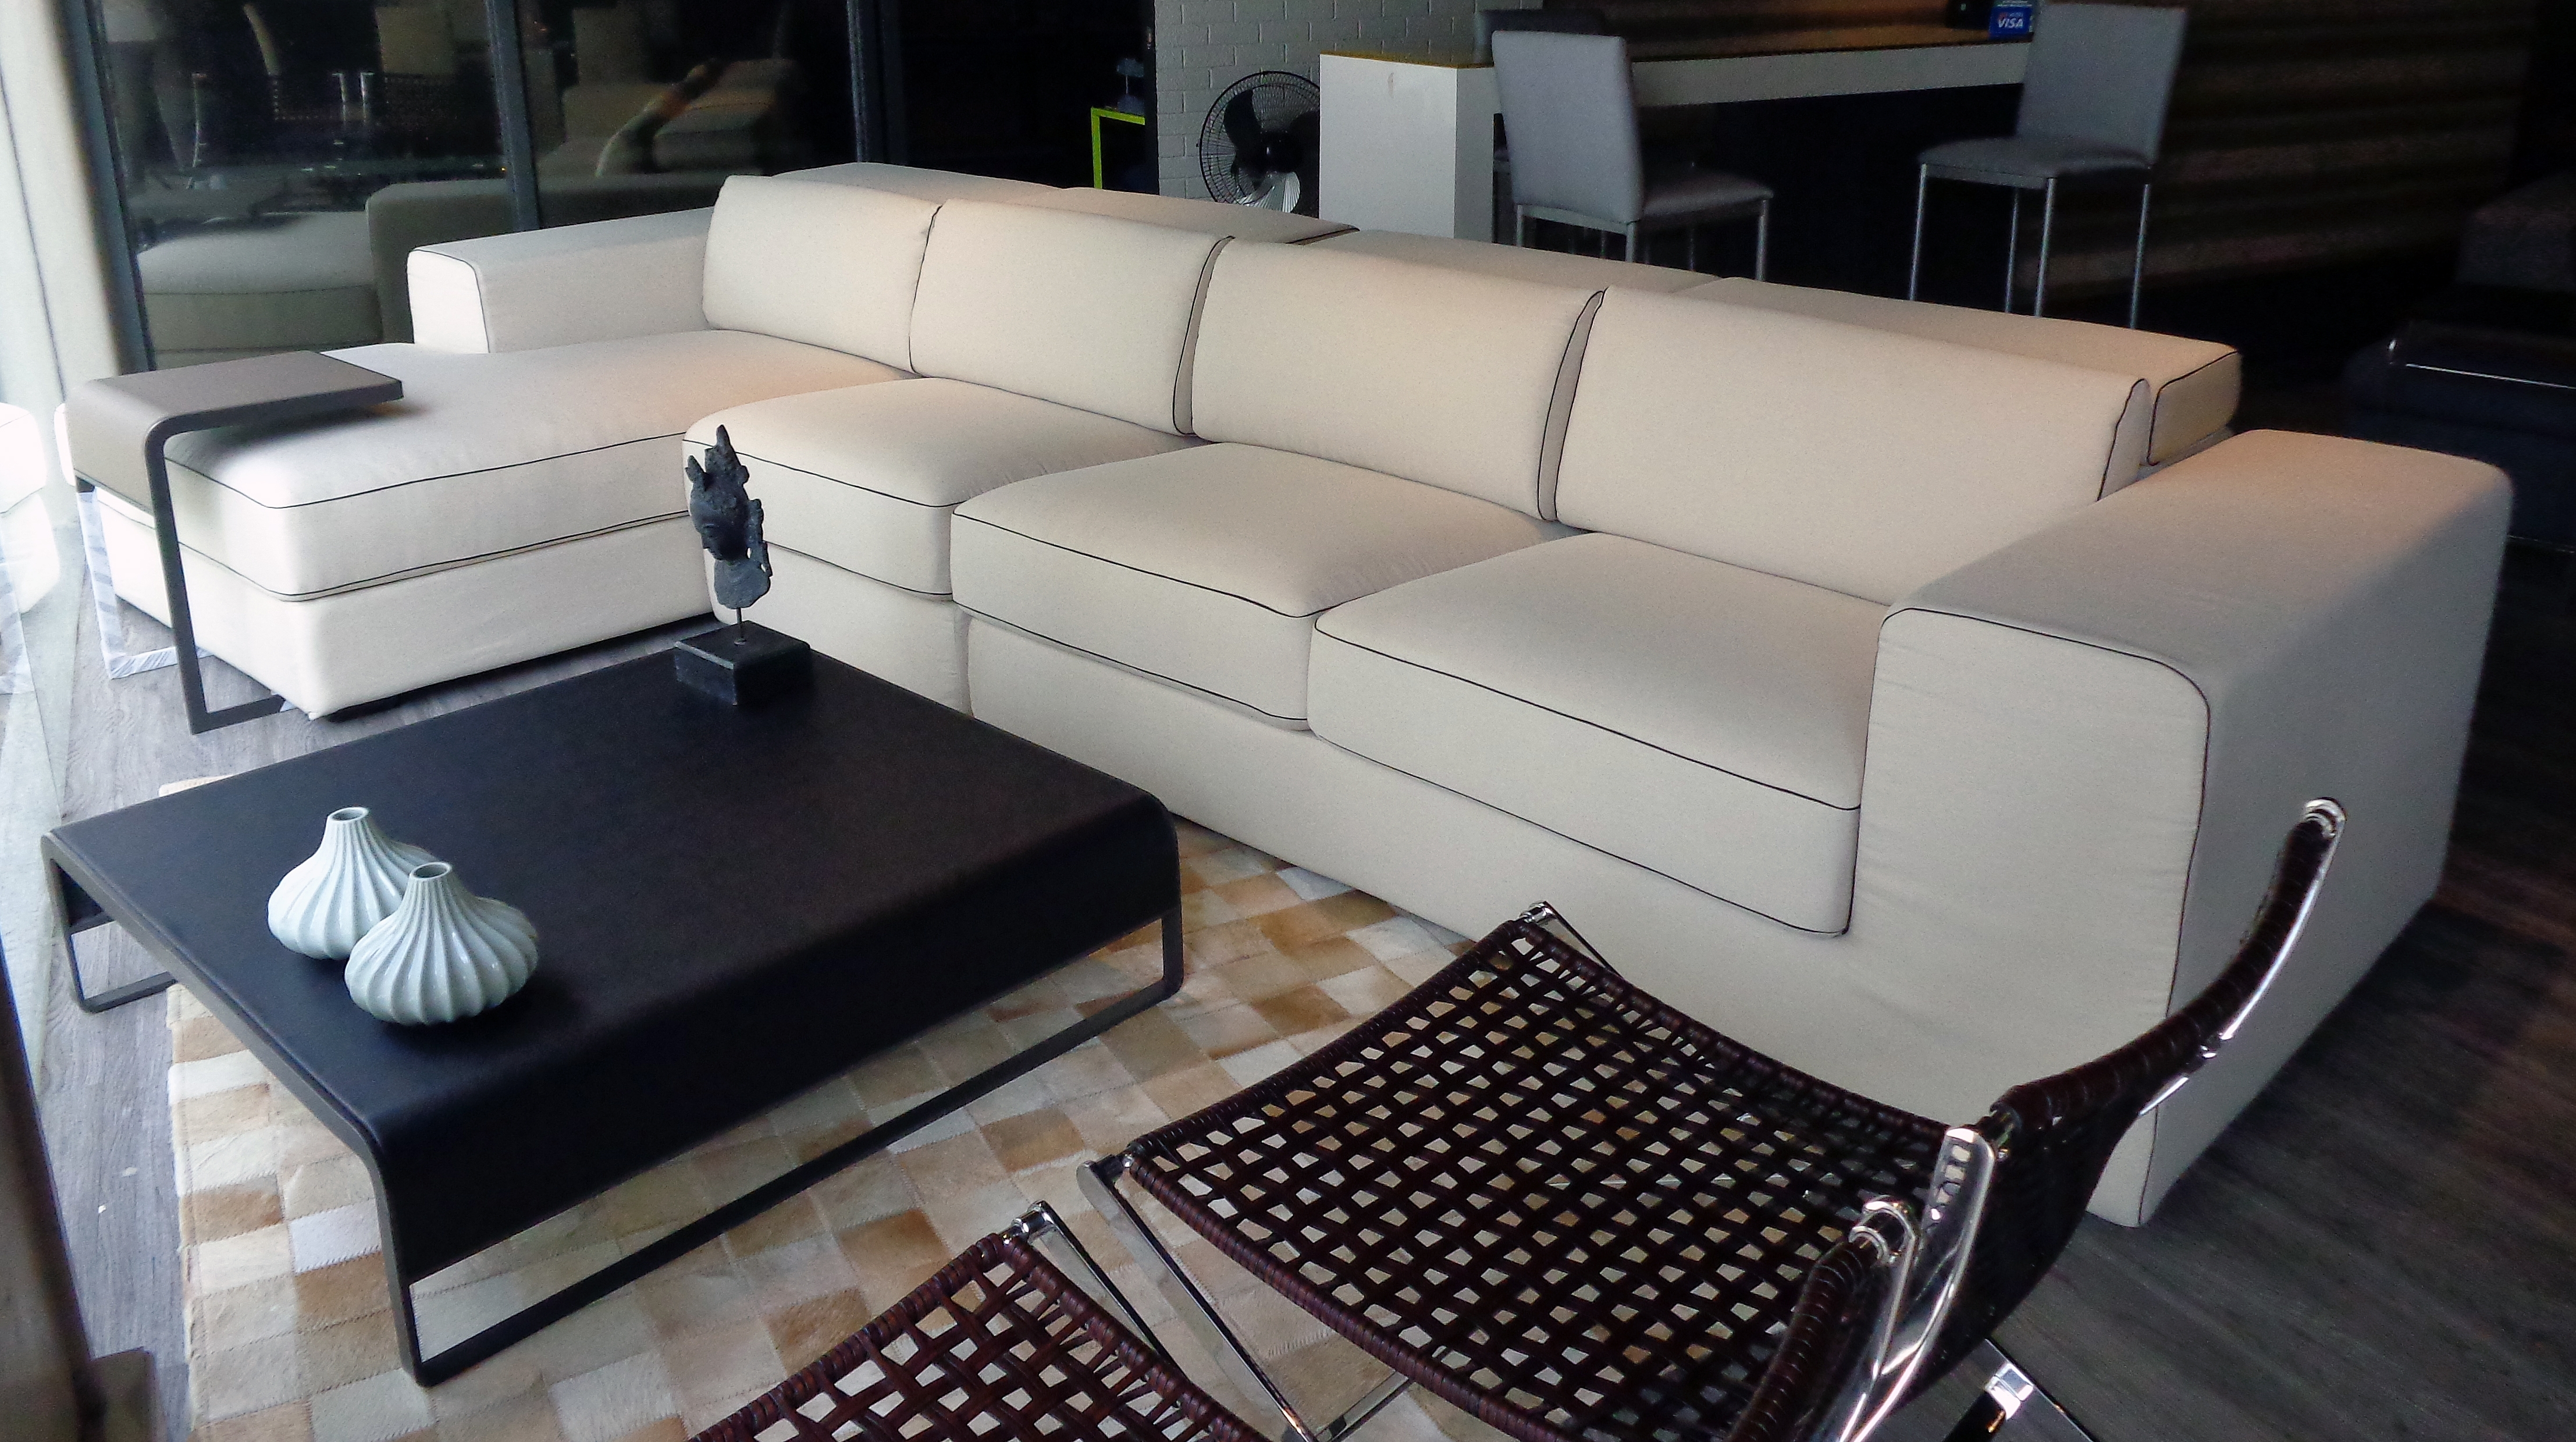 Sectional Sofas – Home Central Philippines with regard to Philippines Sectional Sofas (Image 8 of 10)